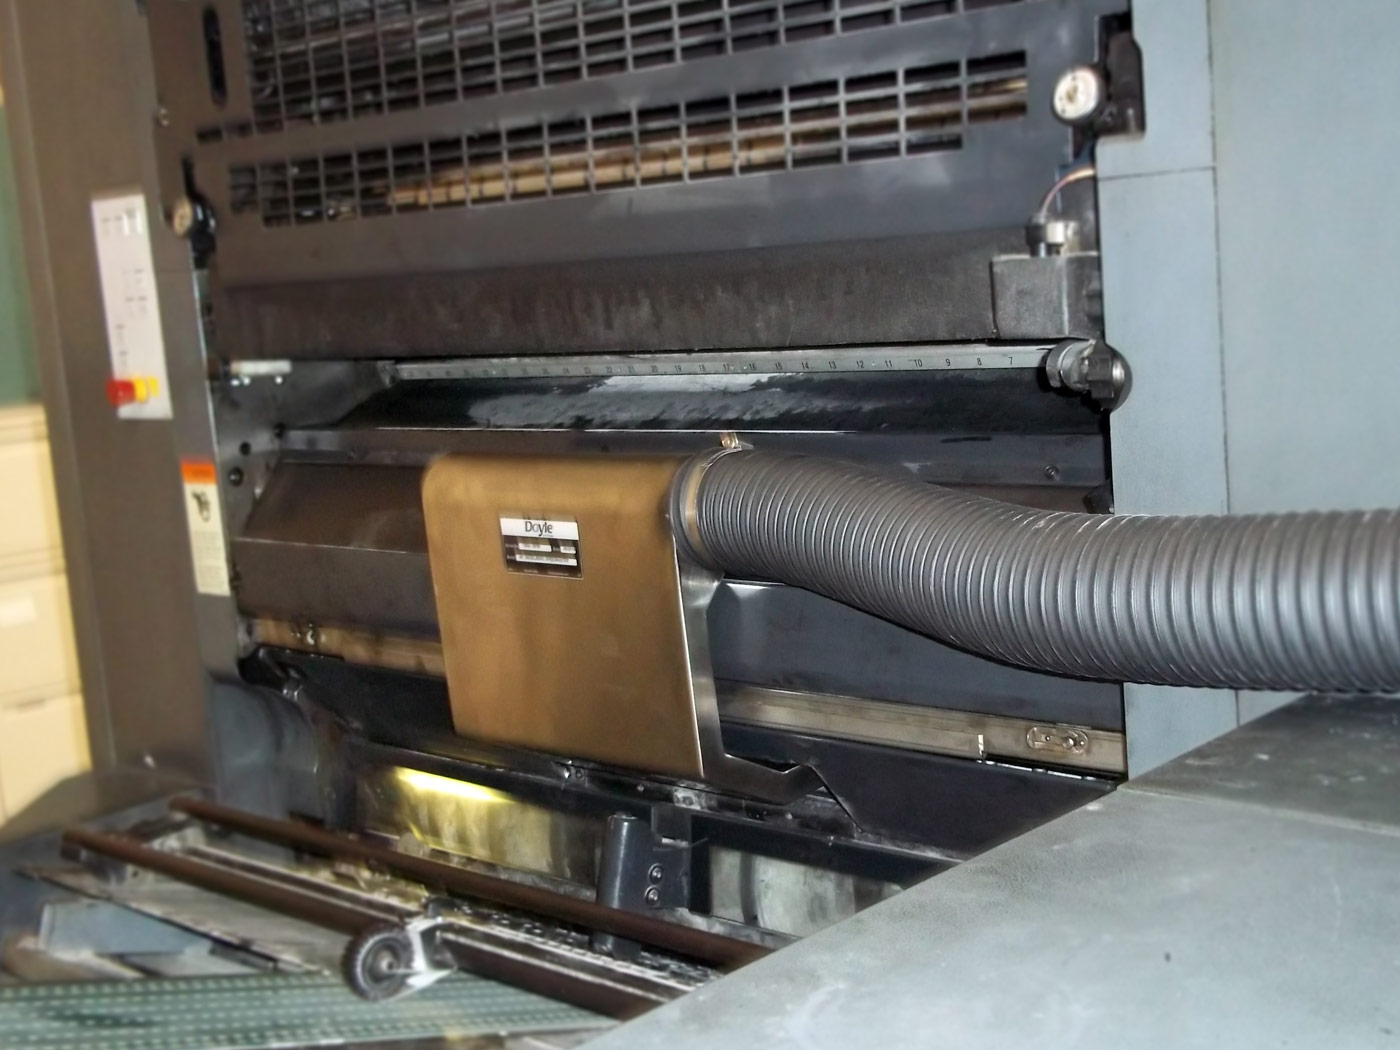 Doyle Installation on Commercial Printing application